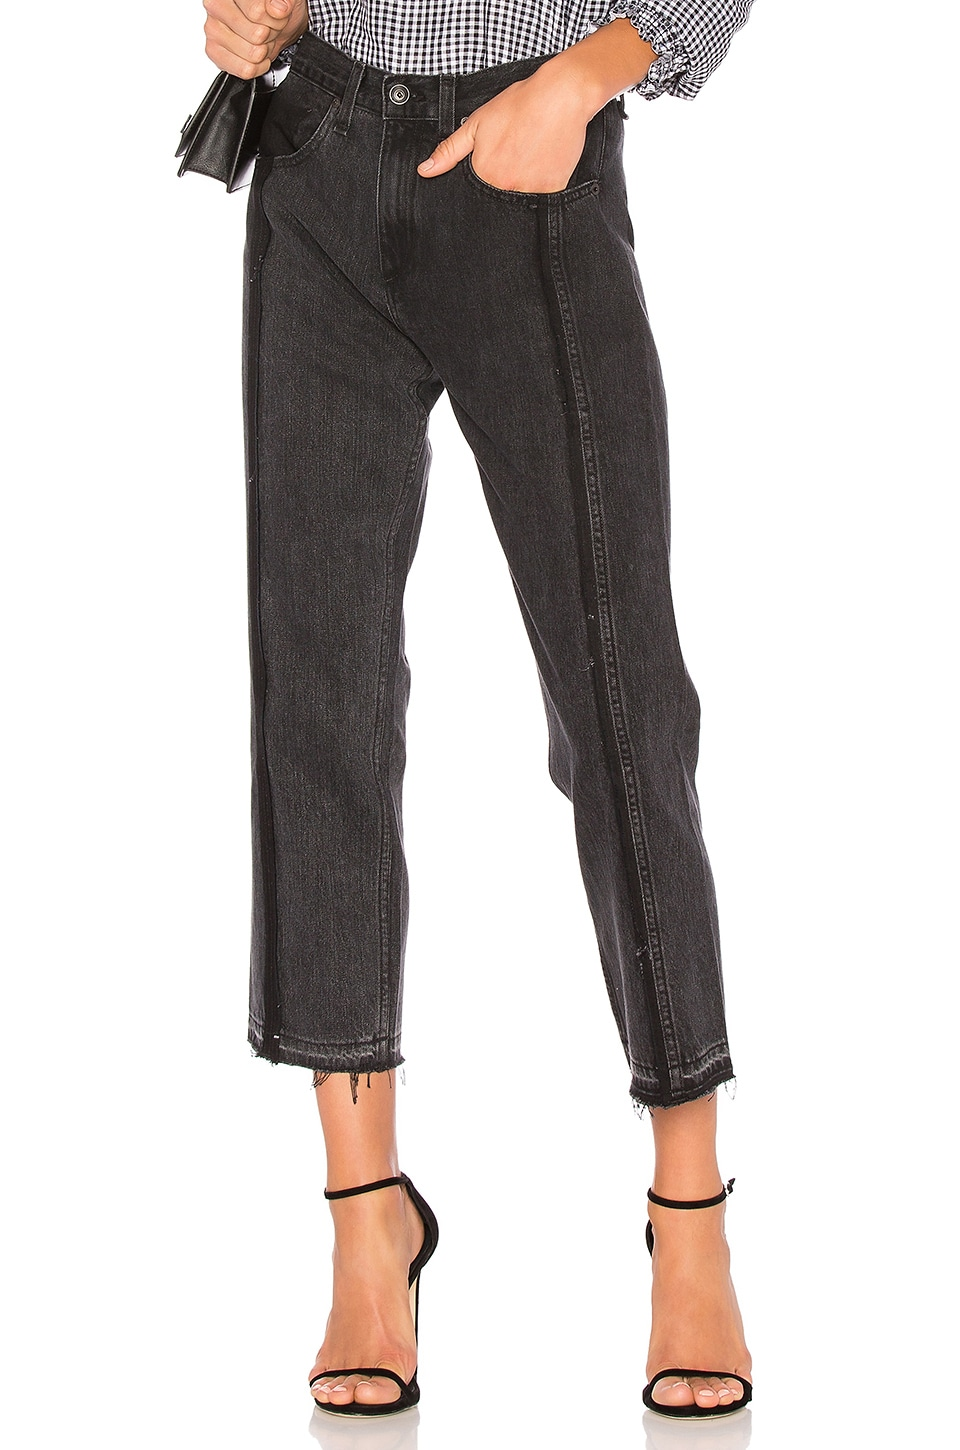 MID-RISE STRAIGHT-LEG SEAMED CROPPED DENIM JEANS